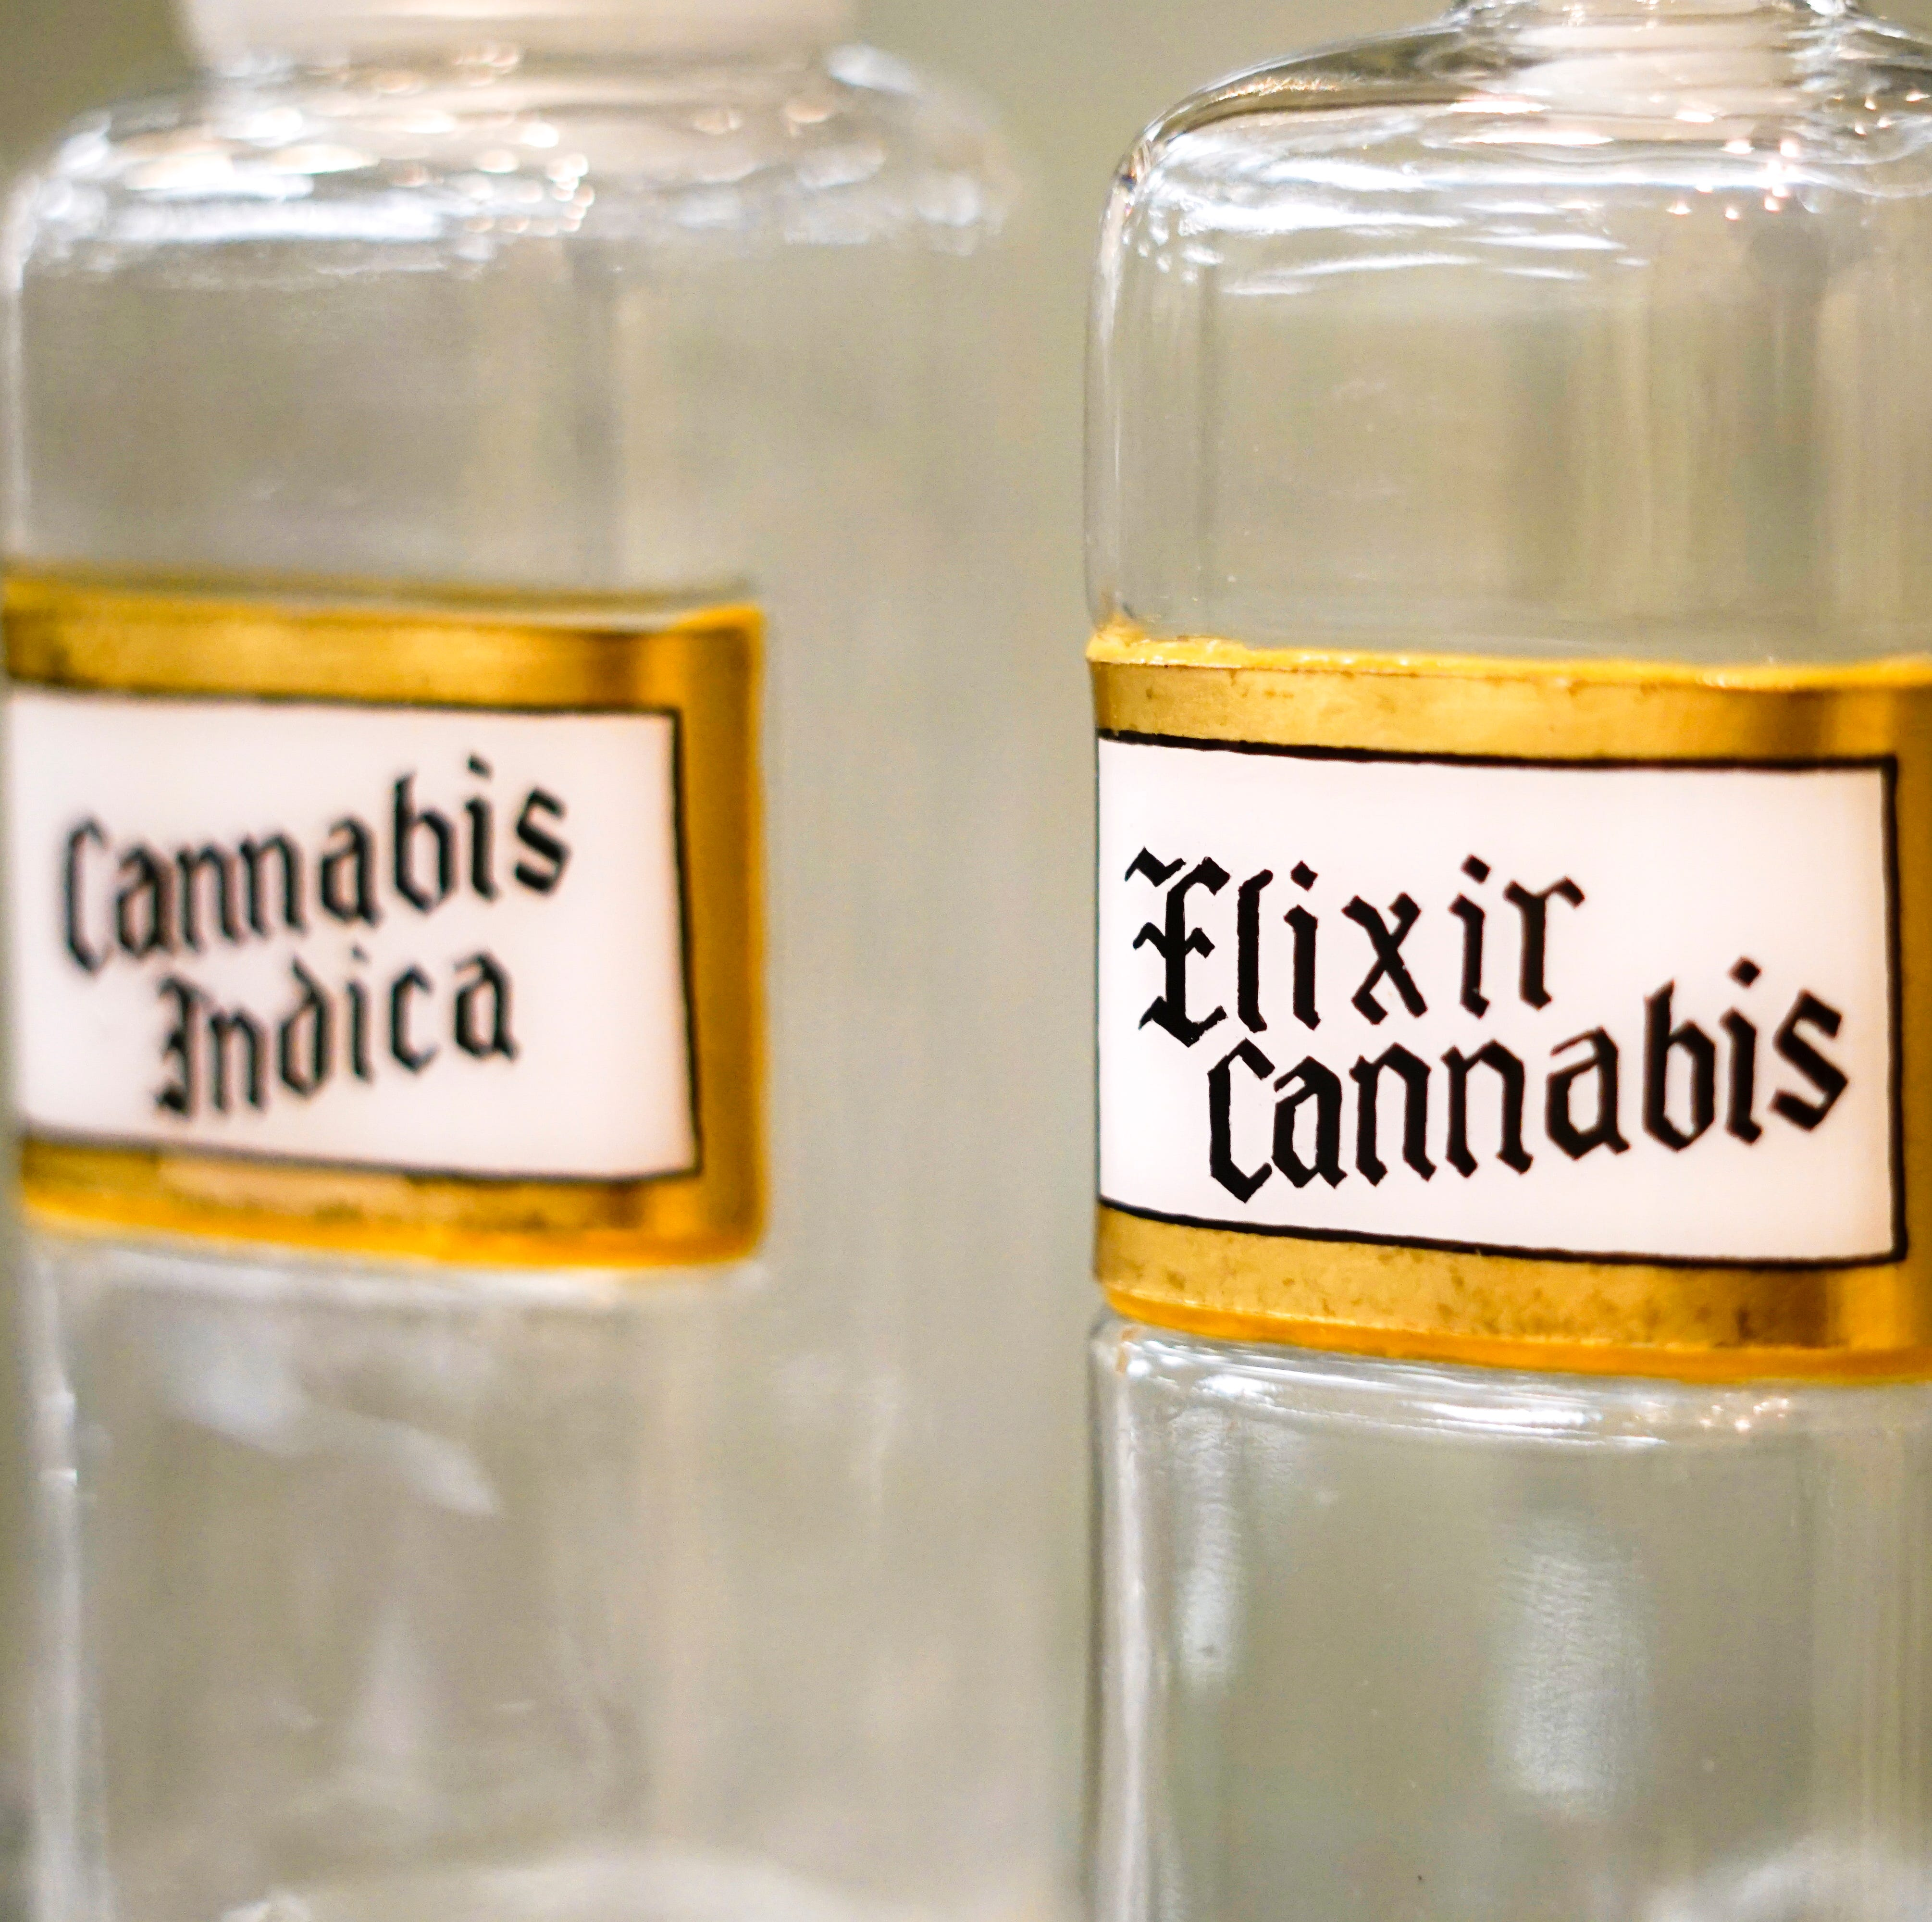 The history of cannabis as medicine? That's tucked away in the stacks of a prestigious collection in Cincinnati